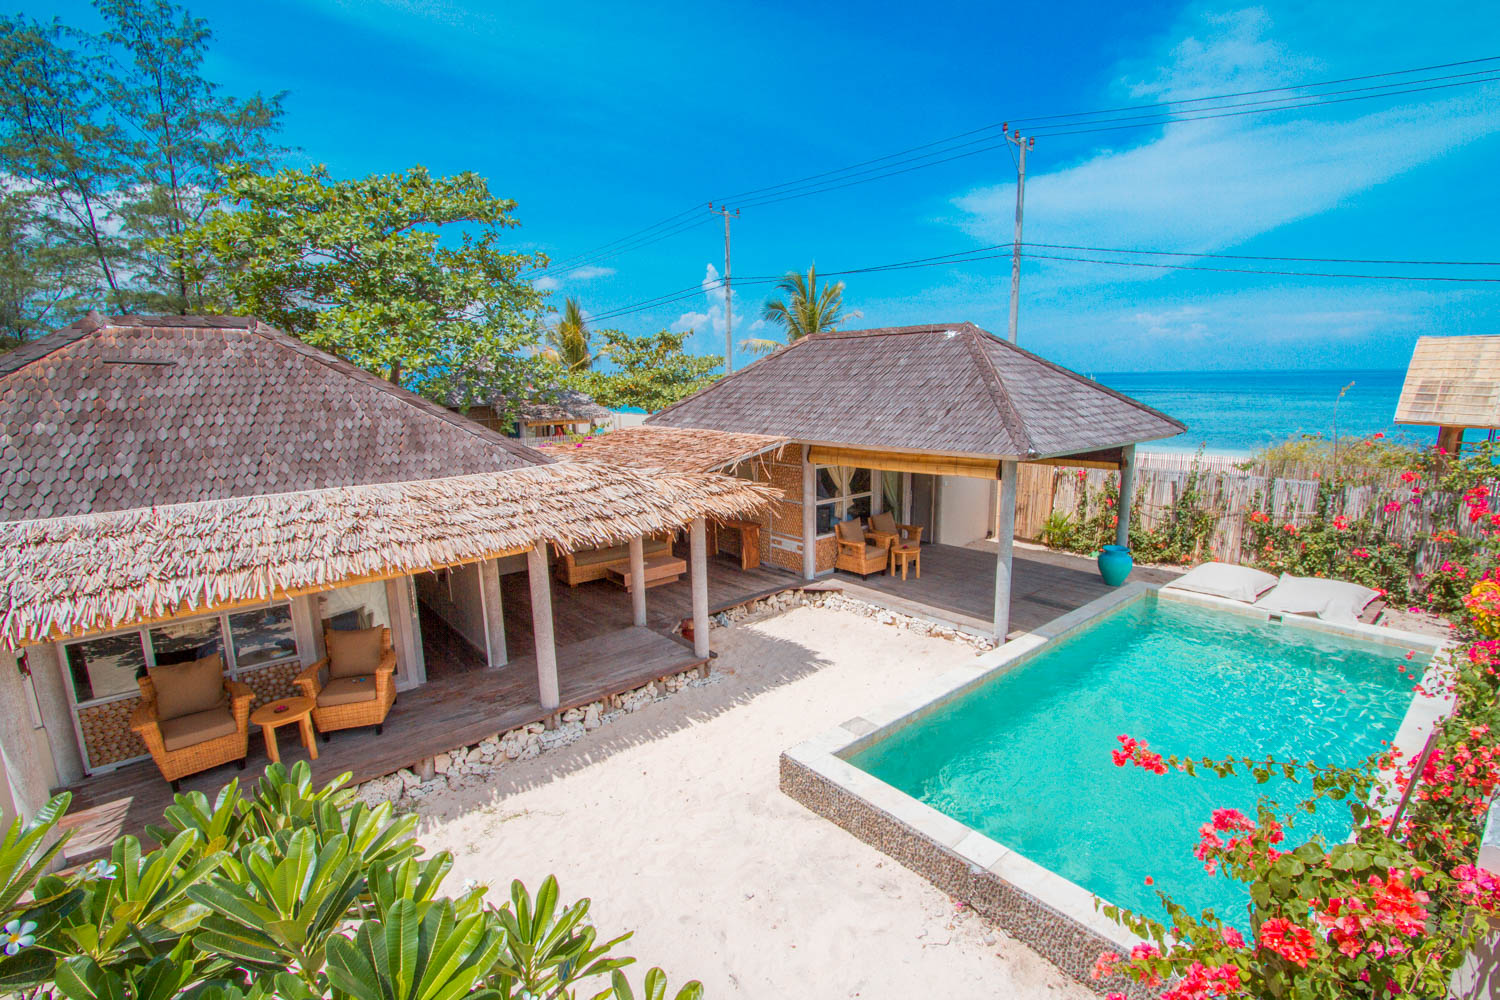 Copy of 2 Bedrooms - Gili Meno